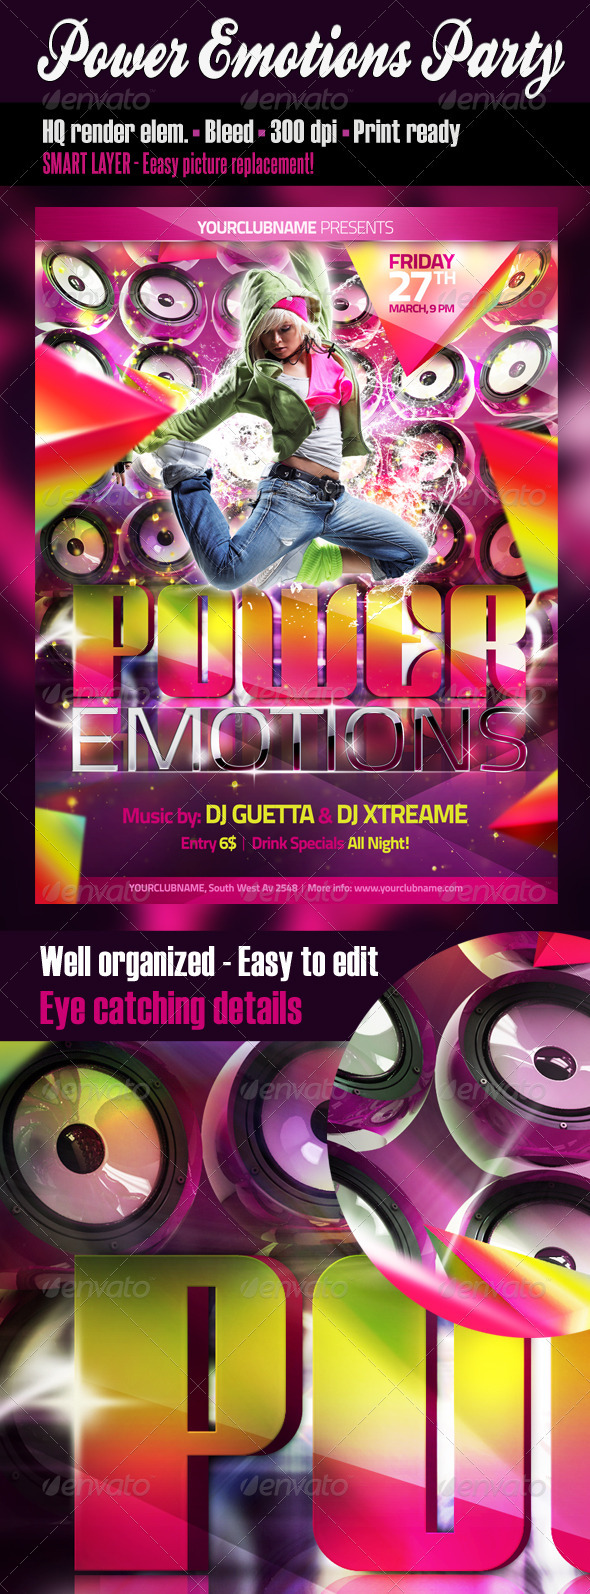 Power Emotions Party Flyer - Clubs & Parties Events